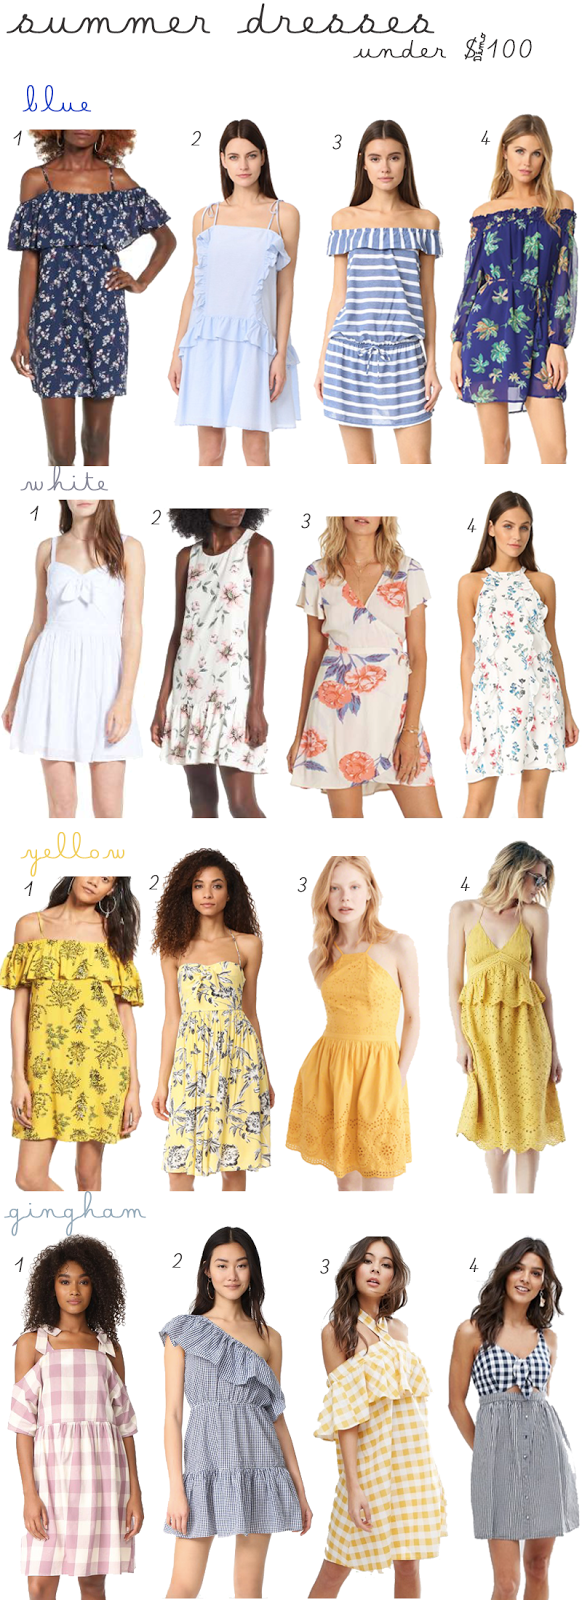 Summer Dresses for under $100